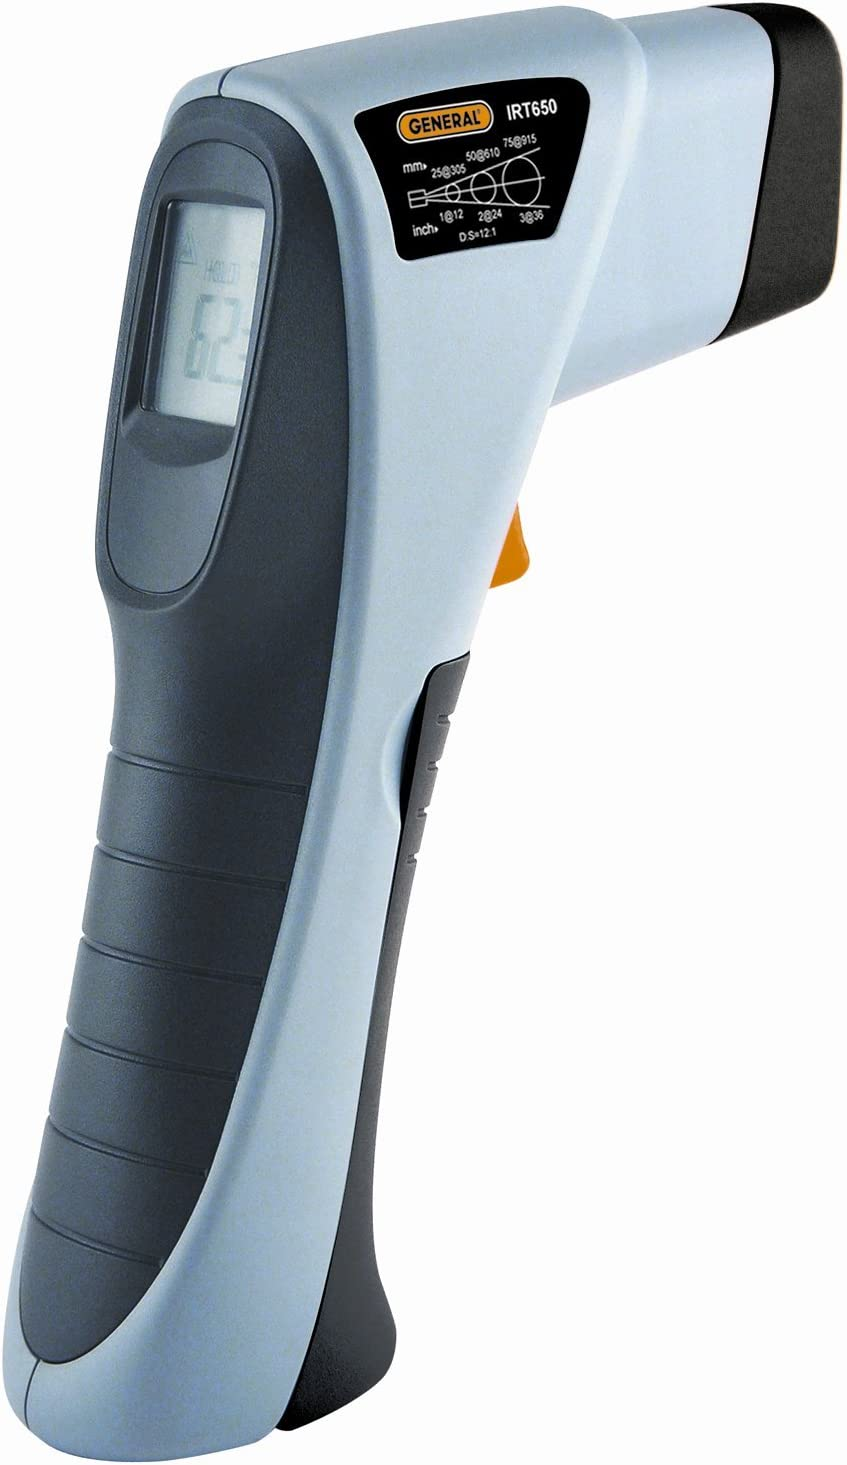 General Tools & Instruments IRT650 Infrared Thermometer, Wide-Range, 12:1